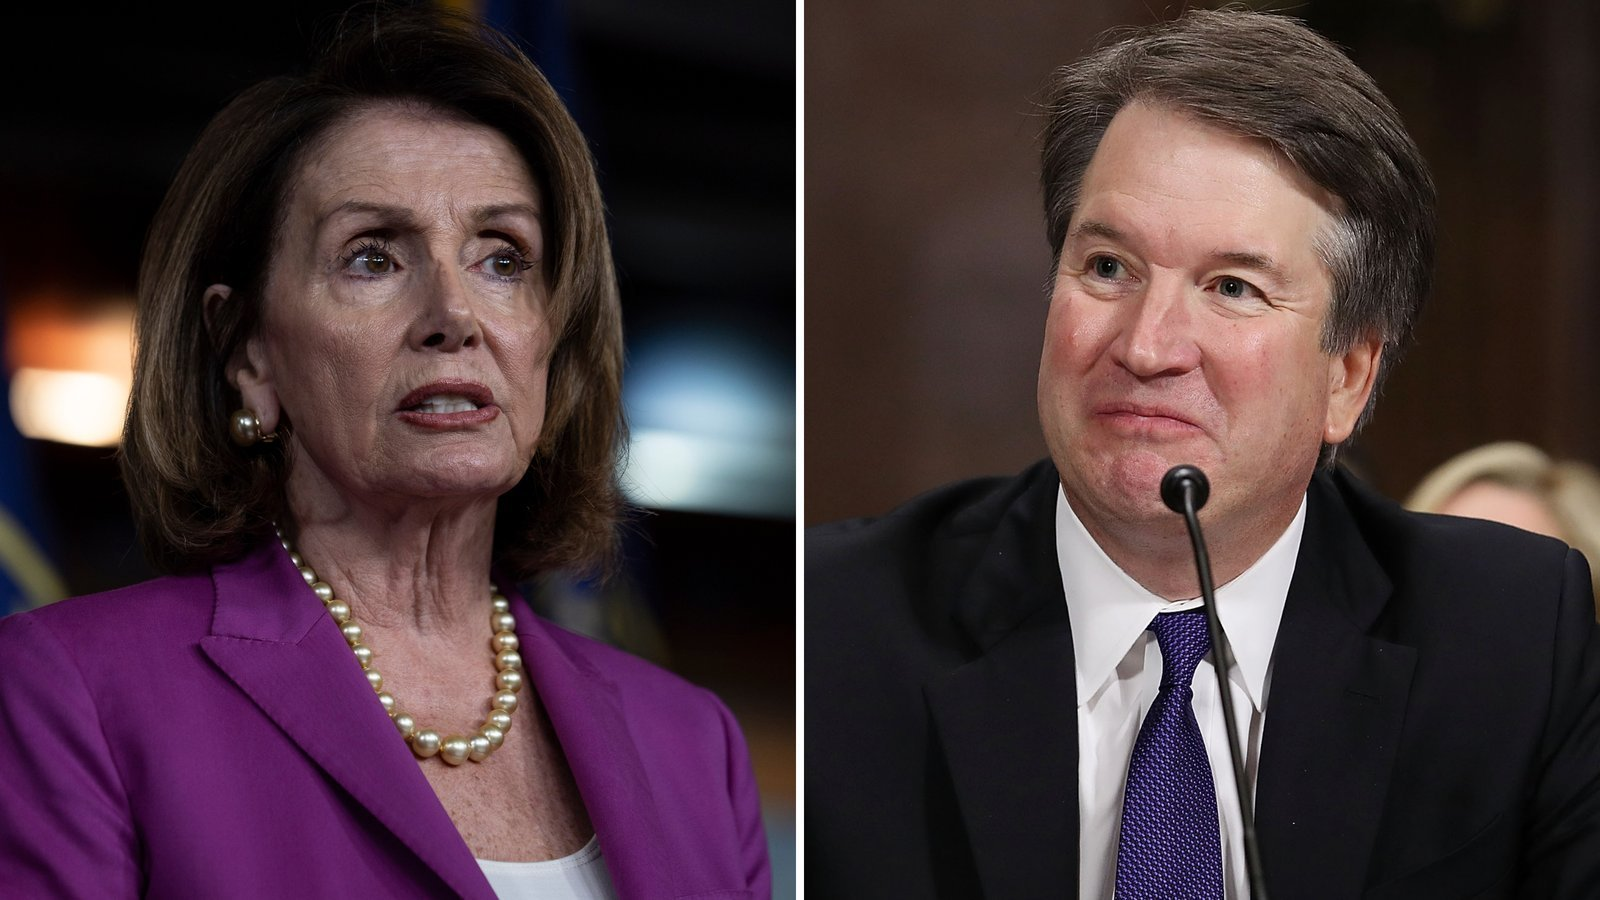 Pelosi and other Democrats say no to Kavanaugh impeachment